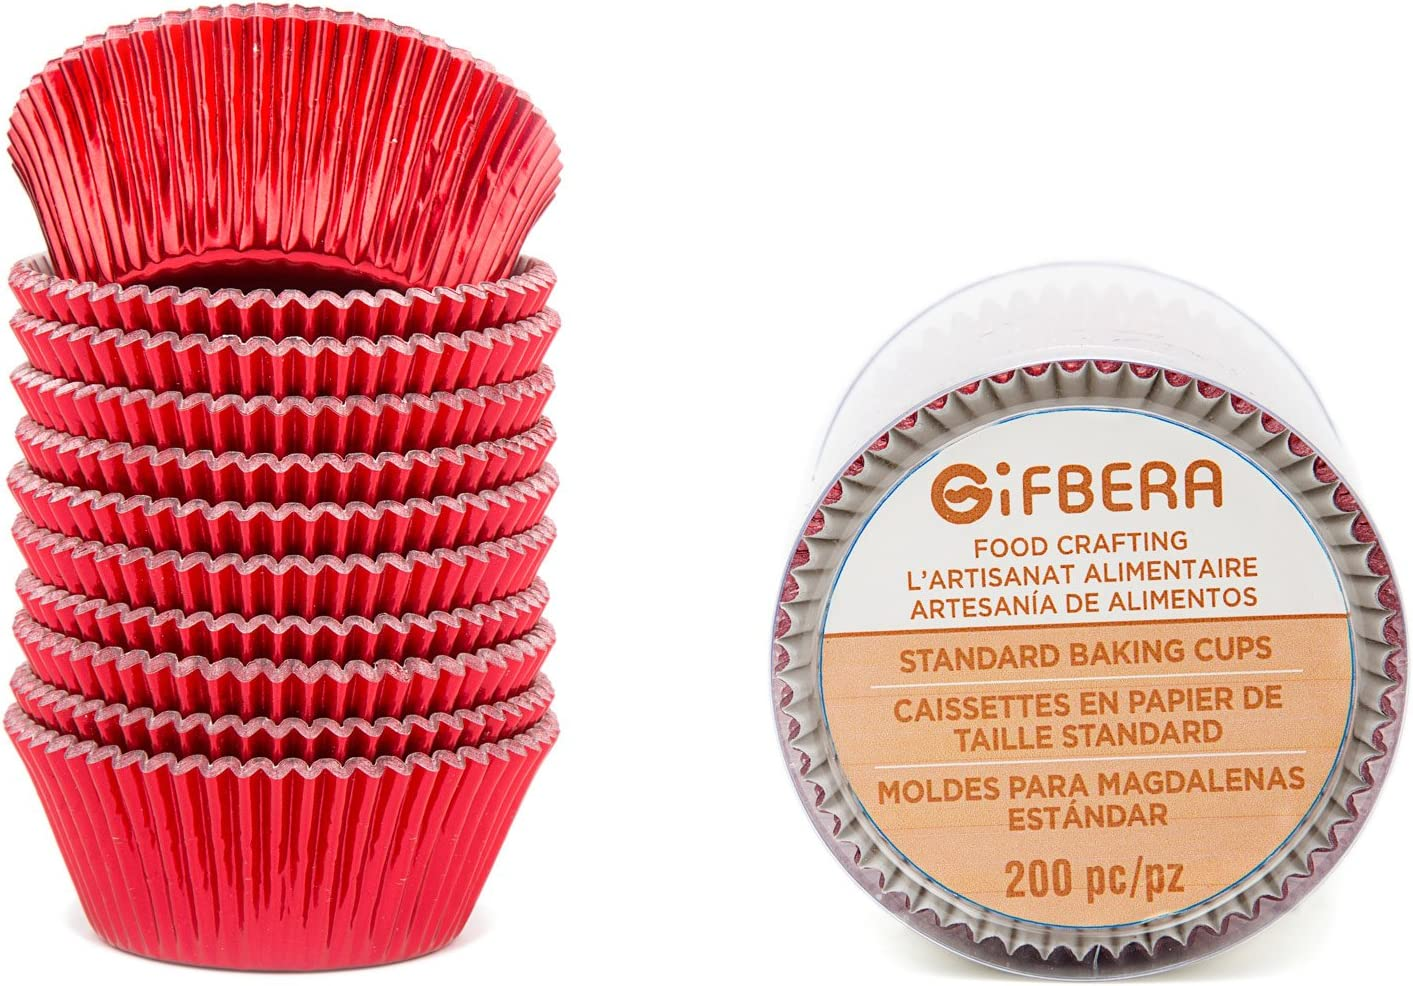 Gifbera Standard Red Foil Cupcake Liners Wrappers Baking Cups for Birthday Wedding Holiday Party, 200-Count (Red)